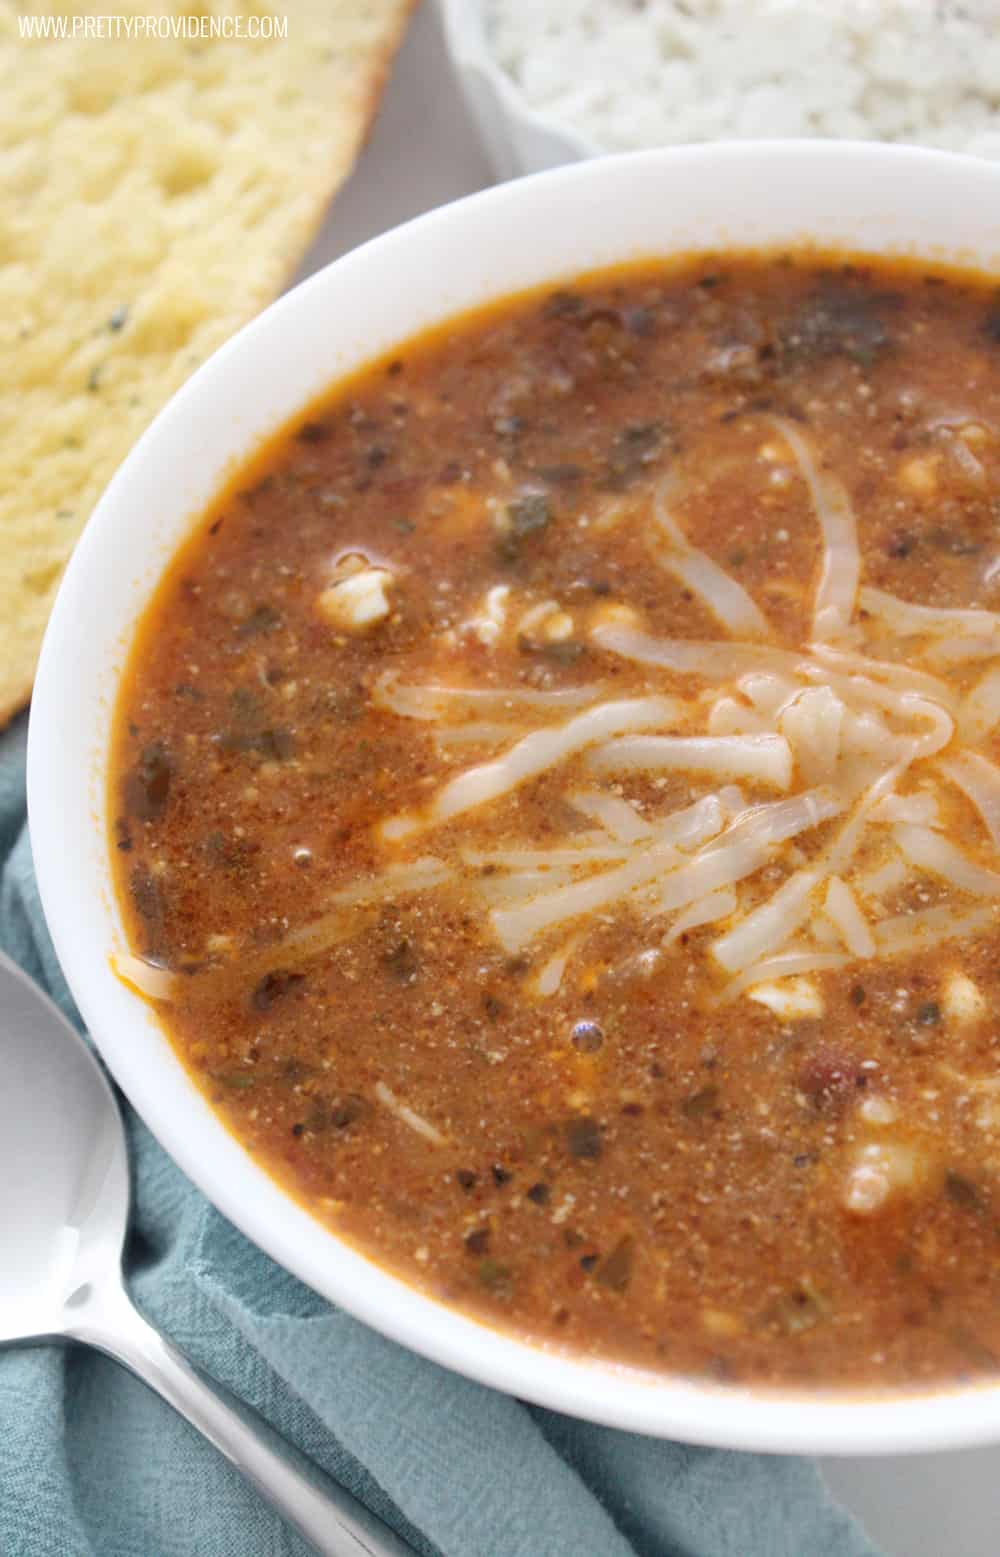 Okay this lasagna soup is freaking amazing! One of our families favorite meals for sure! Hearty, delicious, and feeds a crowd!